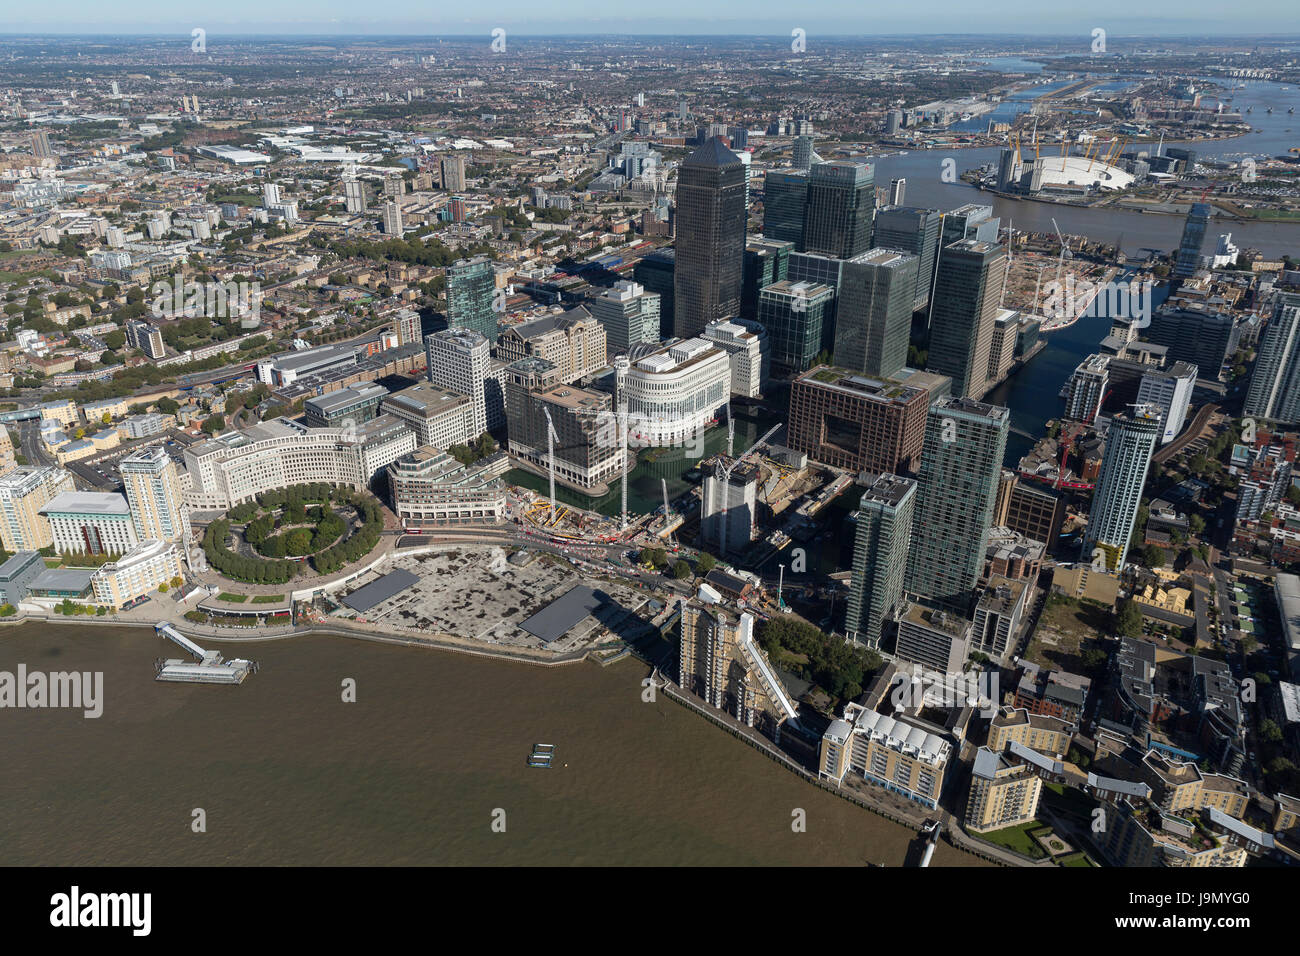 Aerial view of the large commercial buildings at Canary Wharf, Isle of Dogs, Tower Hamlets, East London - Stock Image